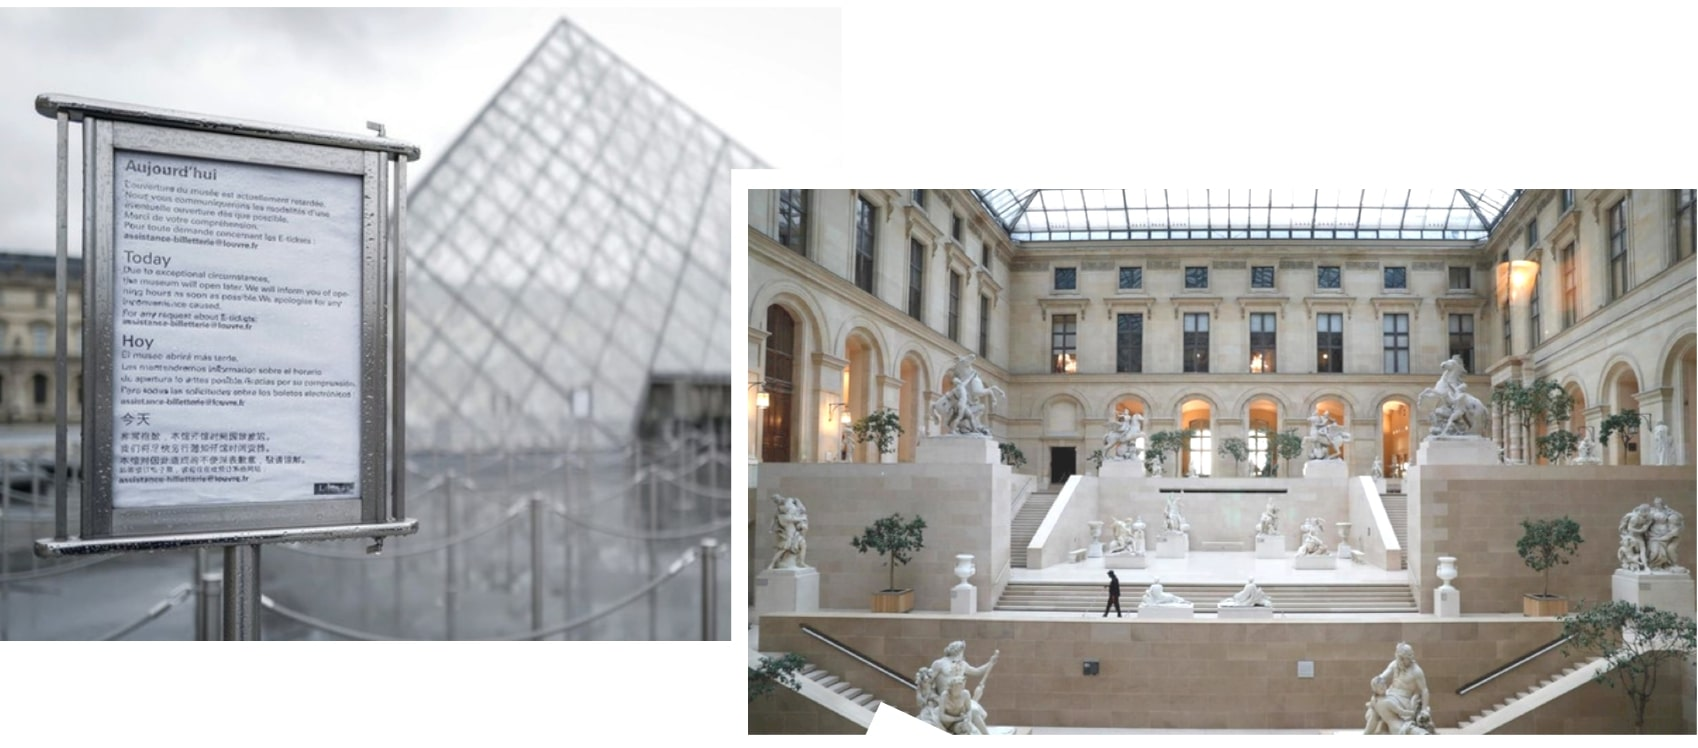 JUNE: reopening of museums, Le Marais at the heart of the summer's cultural reopening